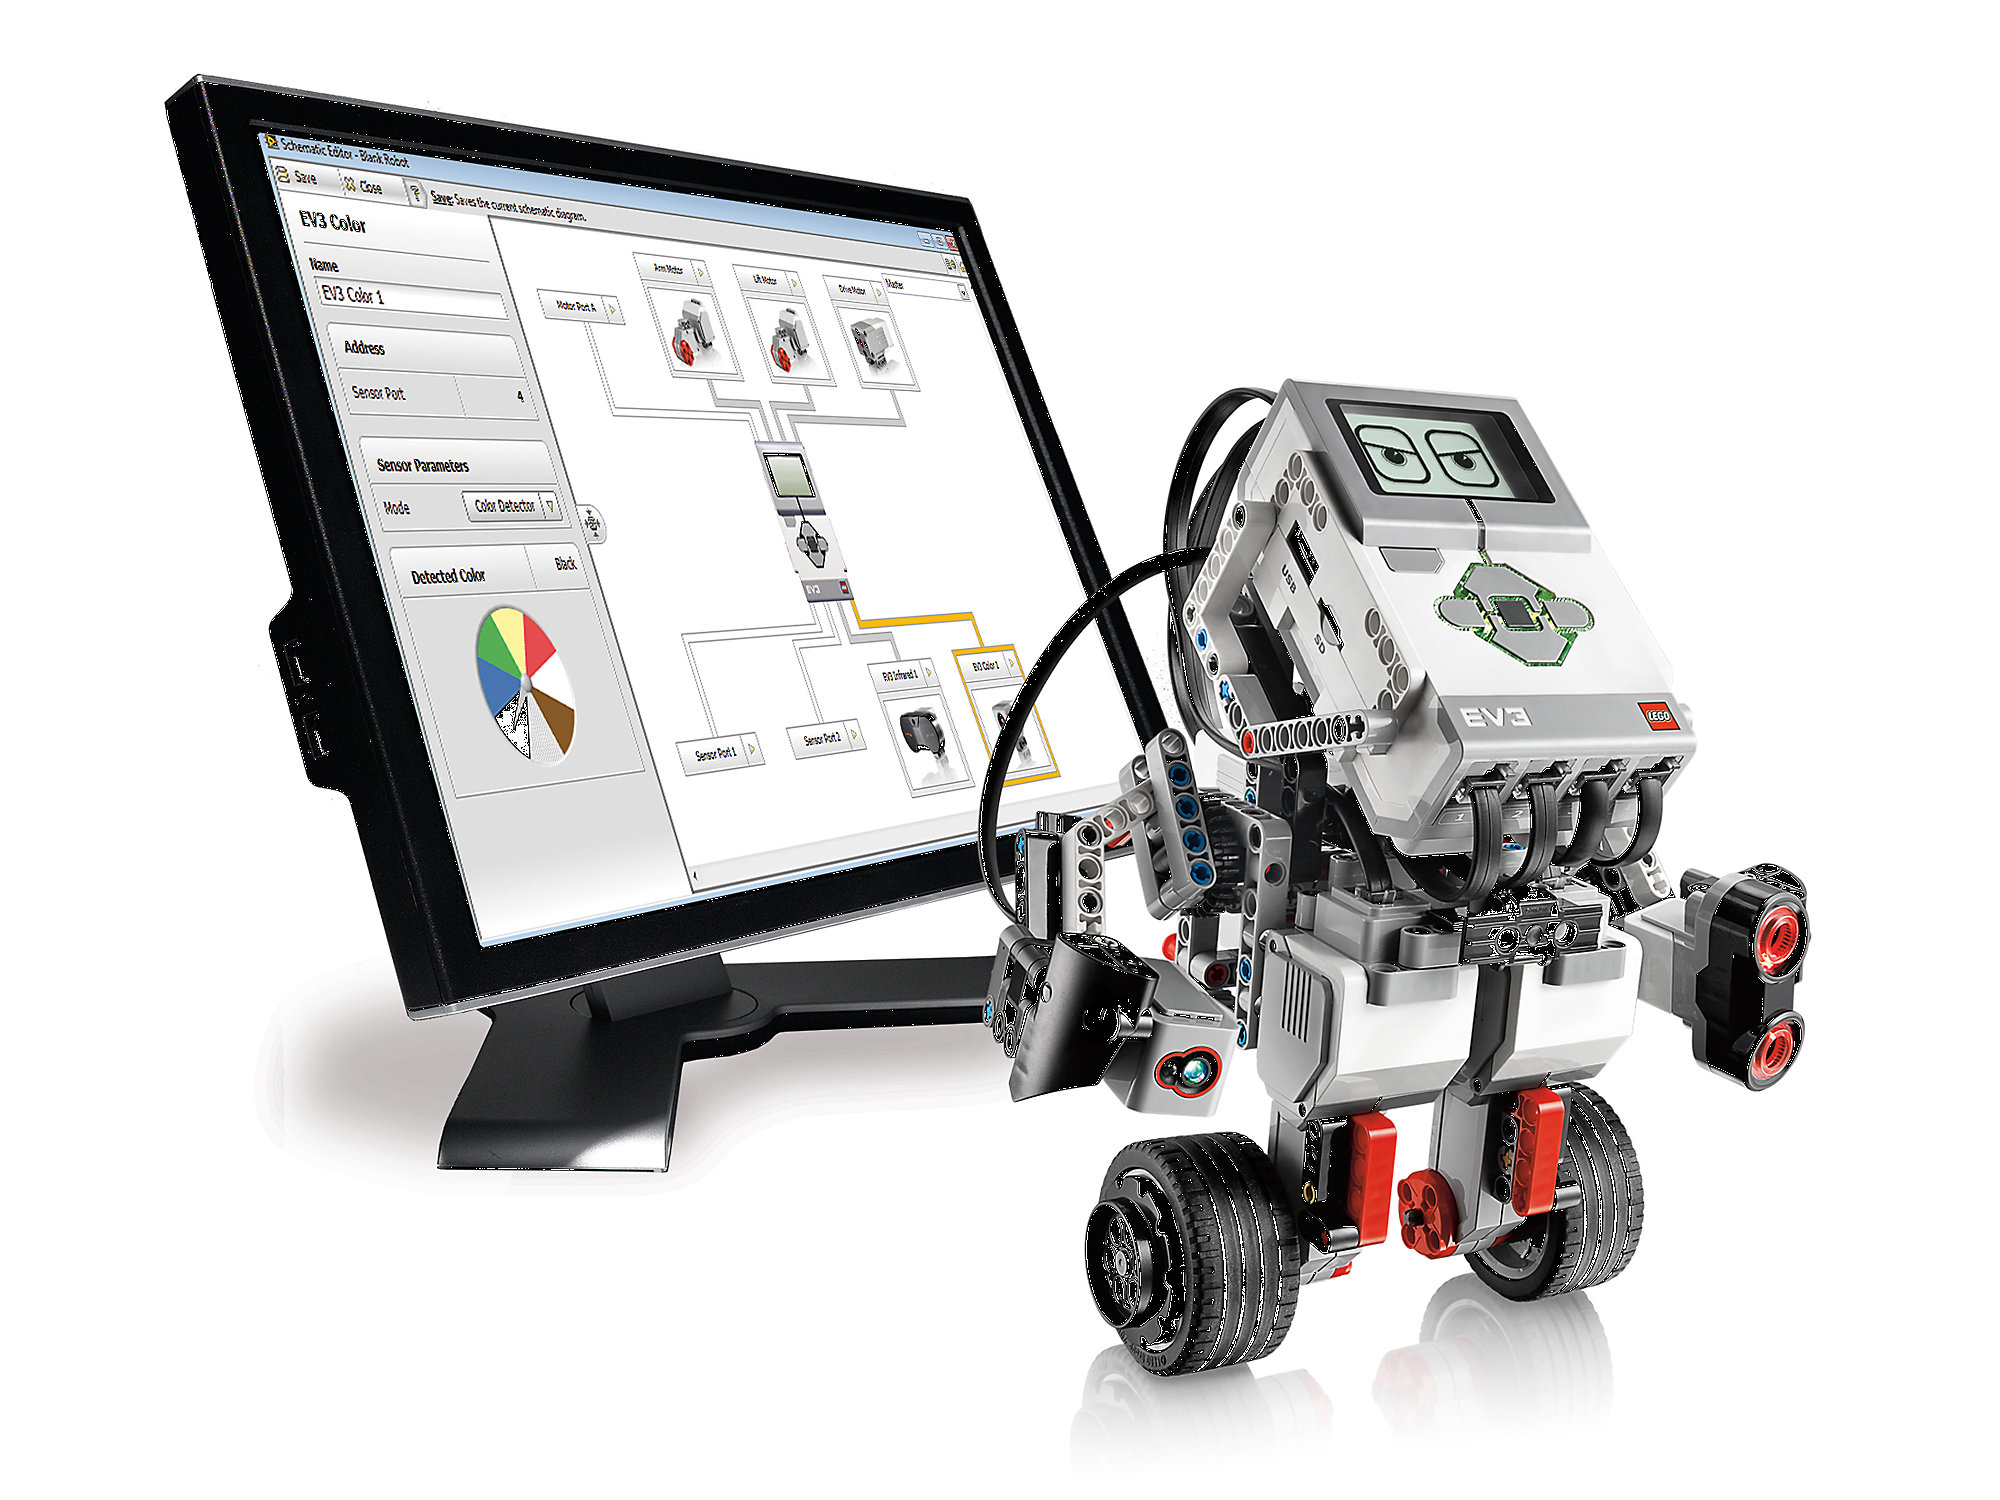 Labview Software Now Fully Compatible With Lego Mindstorms Ev3